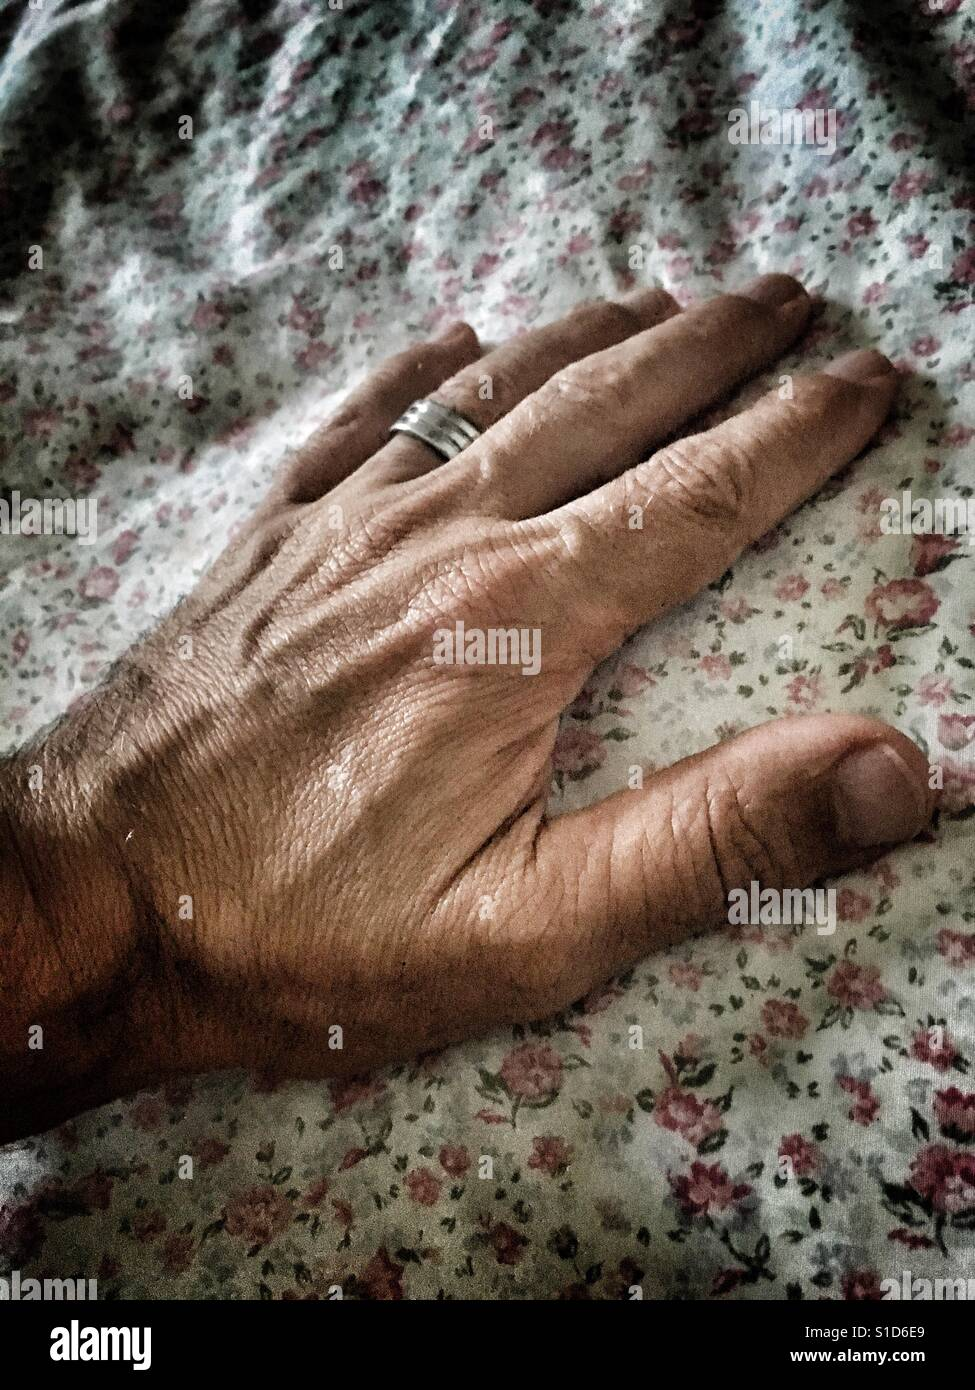 Man's hand on a vintage fabric. - Stock Image